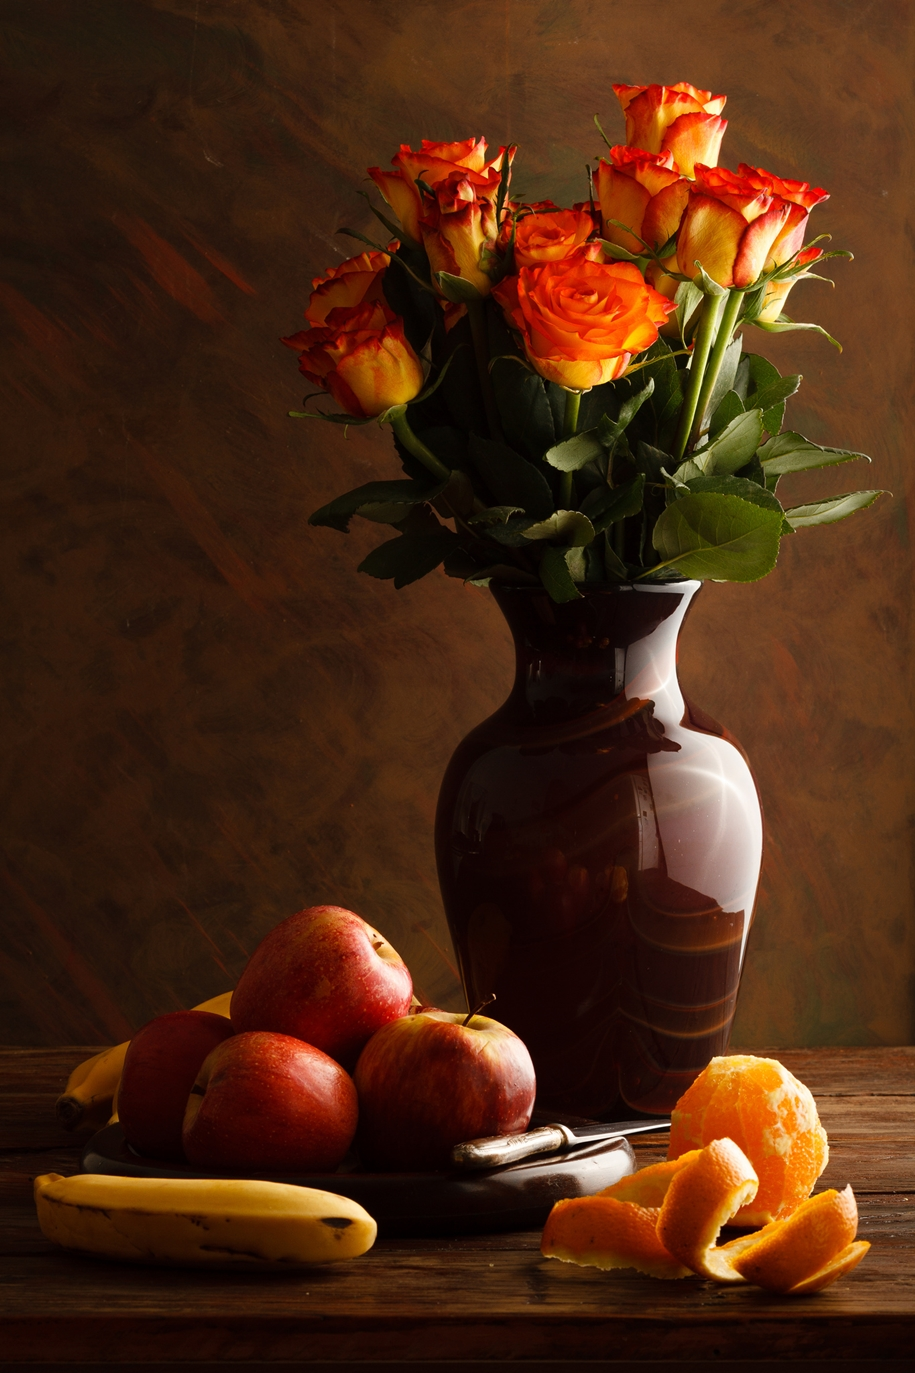 Elegant still life photography by Luiz Laercio 14